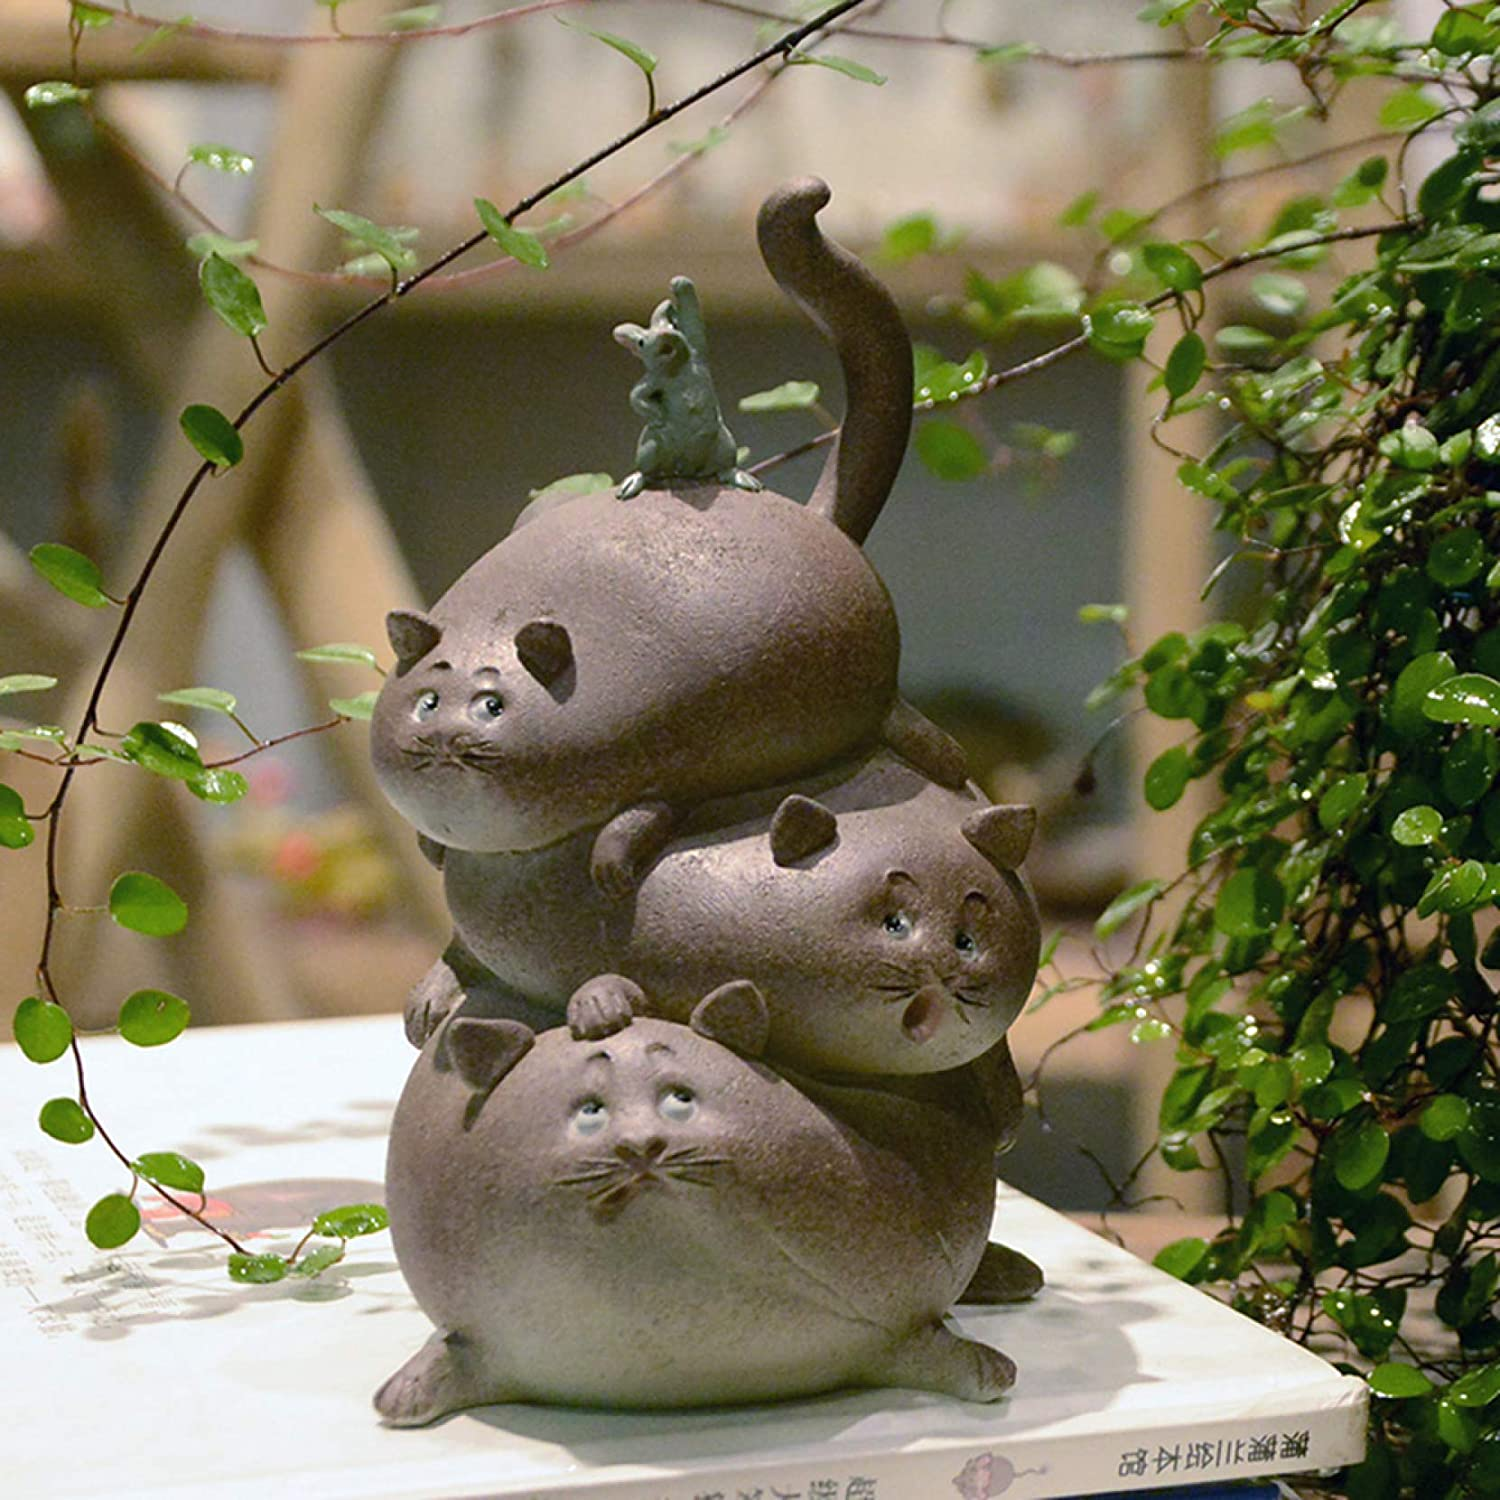 KKONION Cute Cat Figurine Home Decor Resin Animal Statues Desktop Ornament Lovely Cat Crafts Collectible Figurines Gifts